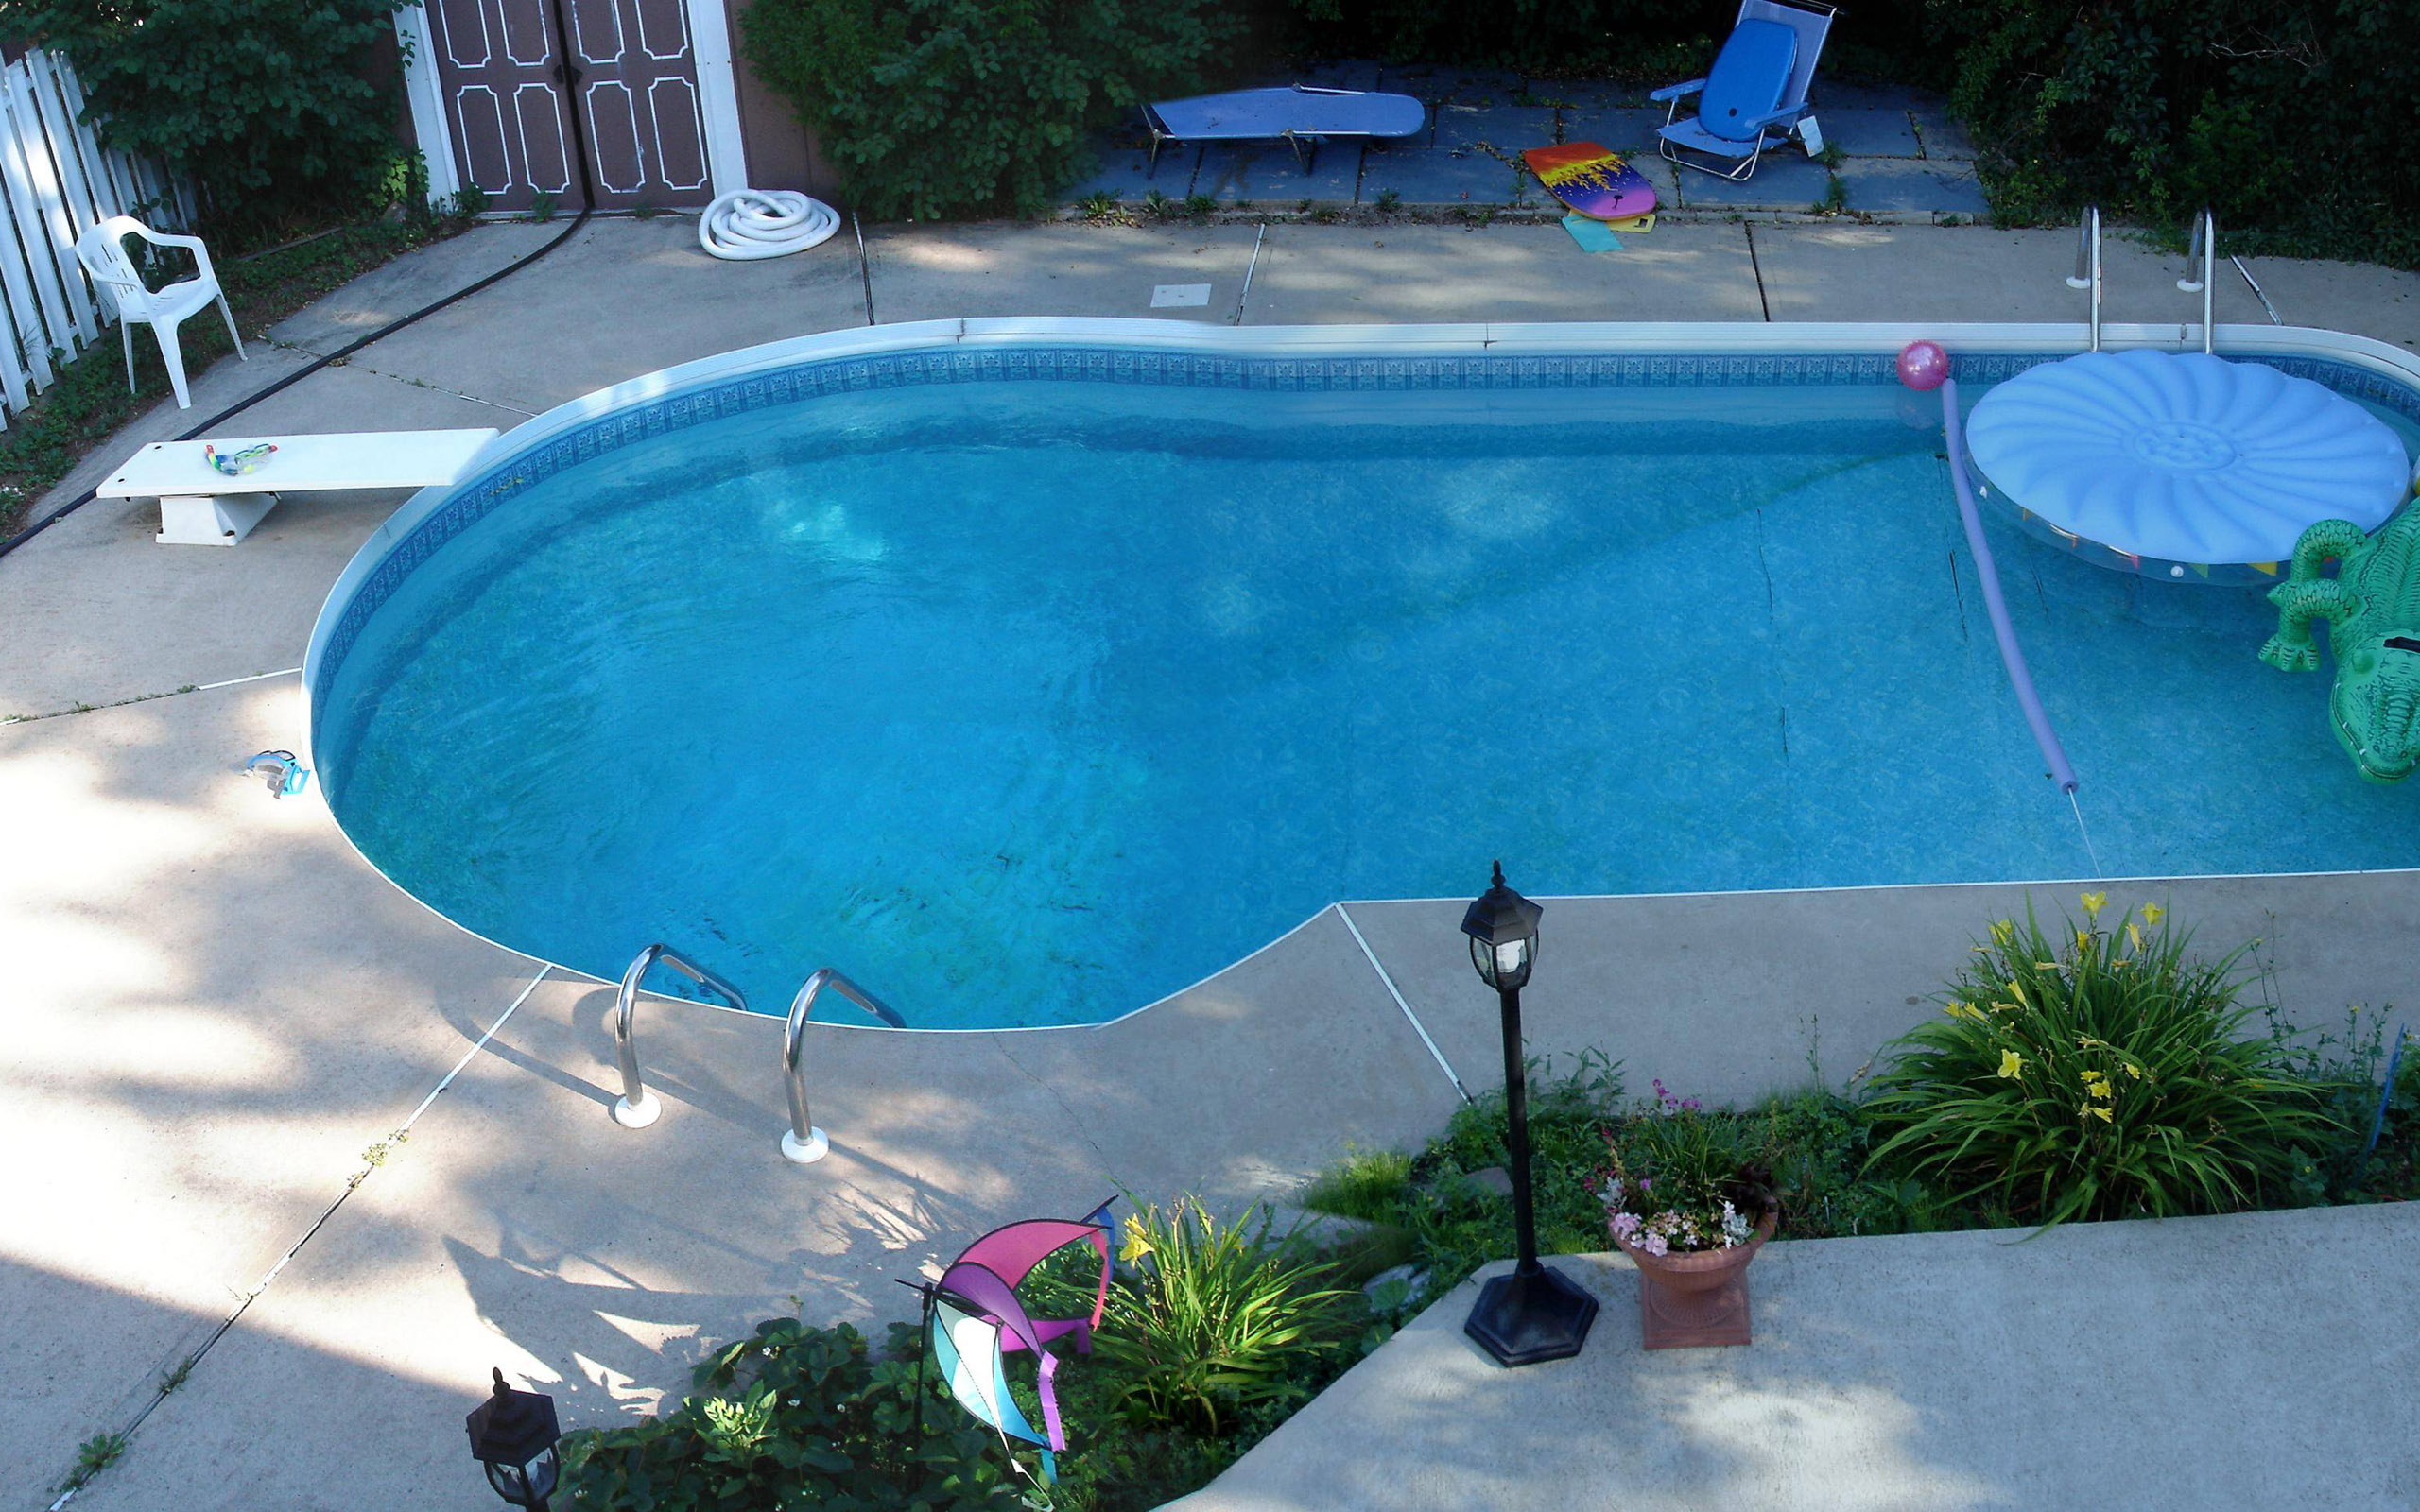 Backyard landscaping ideas swimming pool design for Swimming pool surrounds design